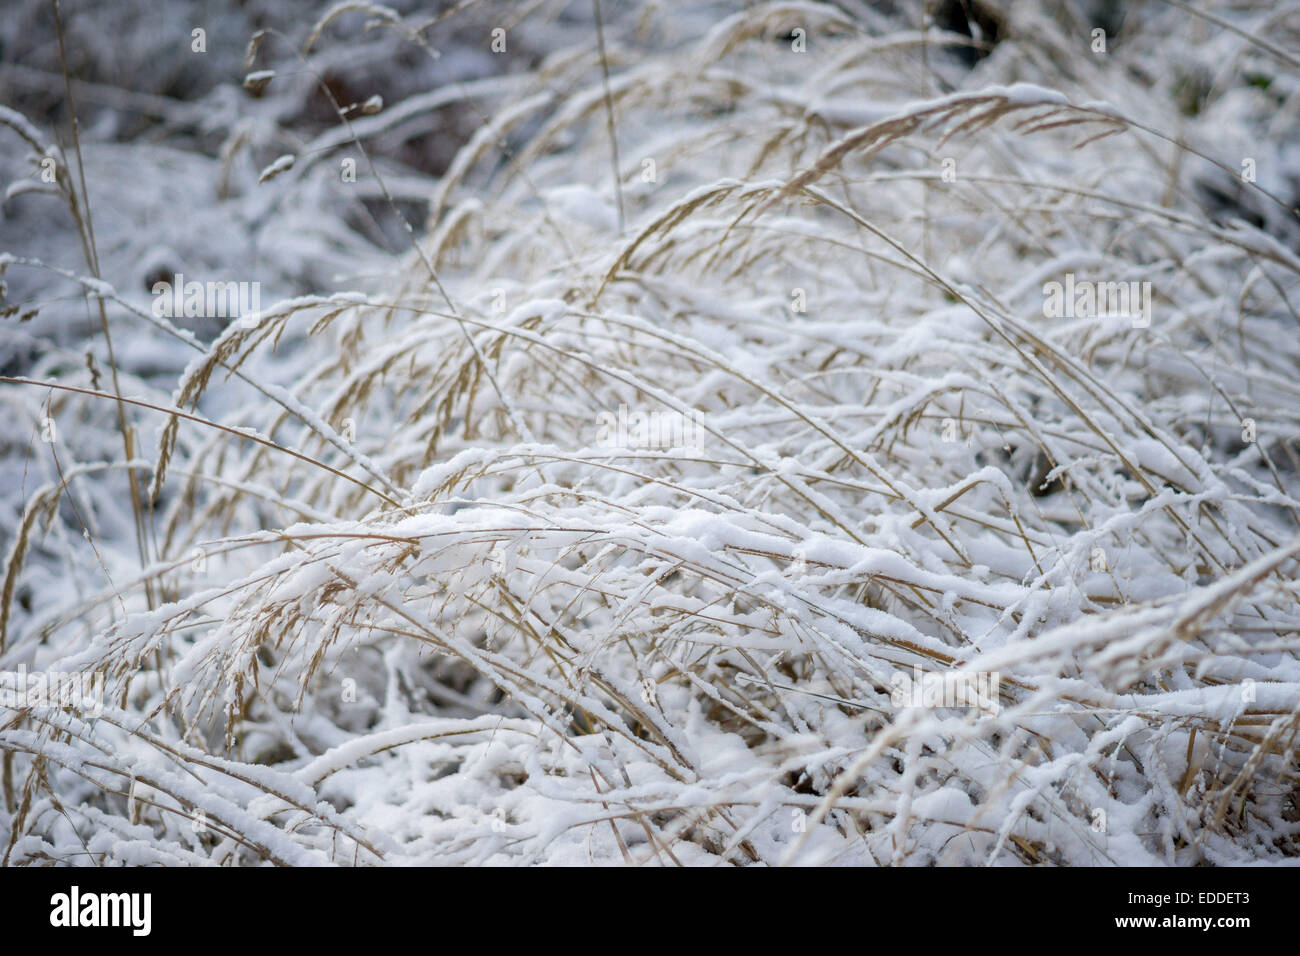 Withered grass covered with snow - Stock Image